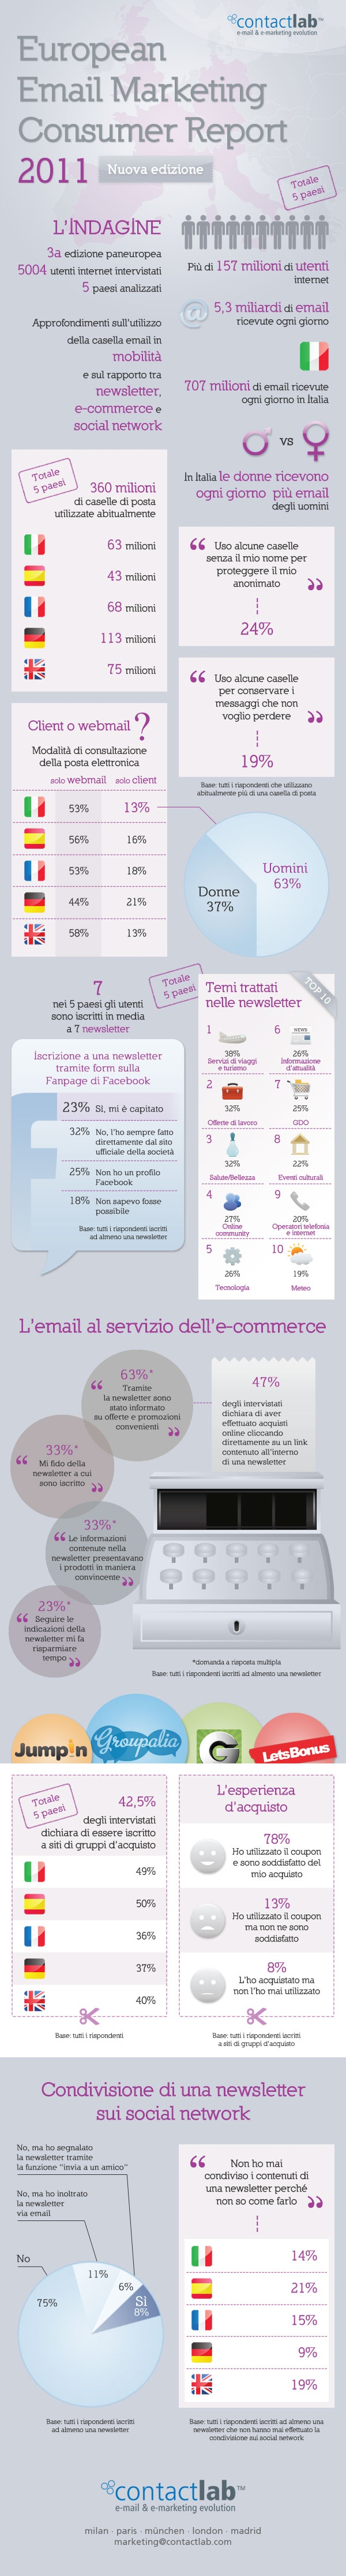 E-mail Marketing Consumer Report 2011 http://www.contactlab.com/email-marketing-report-europe